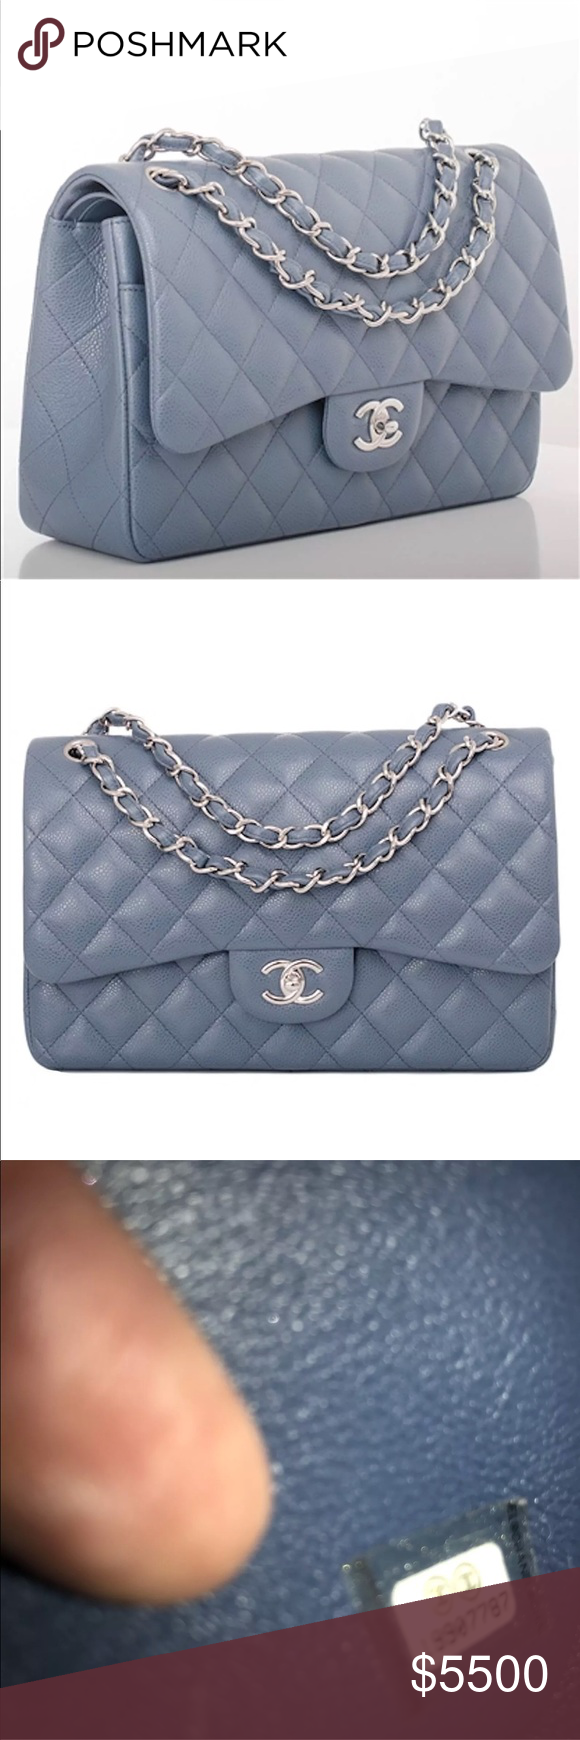 6e92c1865748 Chanel Caviar Double Flap Jumbo SHW FULL SET 100% Authentic Chanel Jumbo  double Flap in blue grey caviar with SHW. 14B Perfect classic in a timeless  yet ...